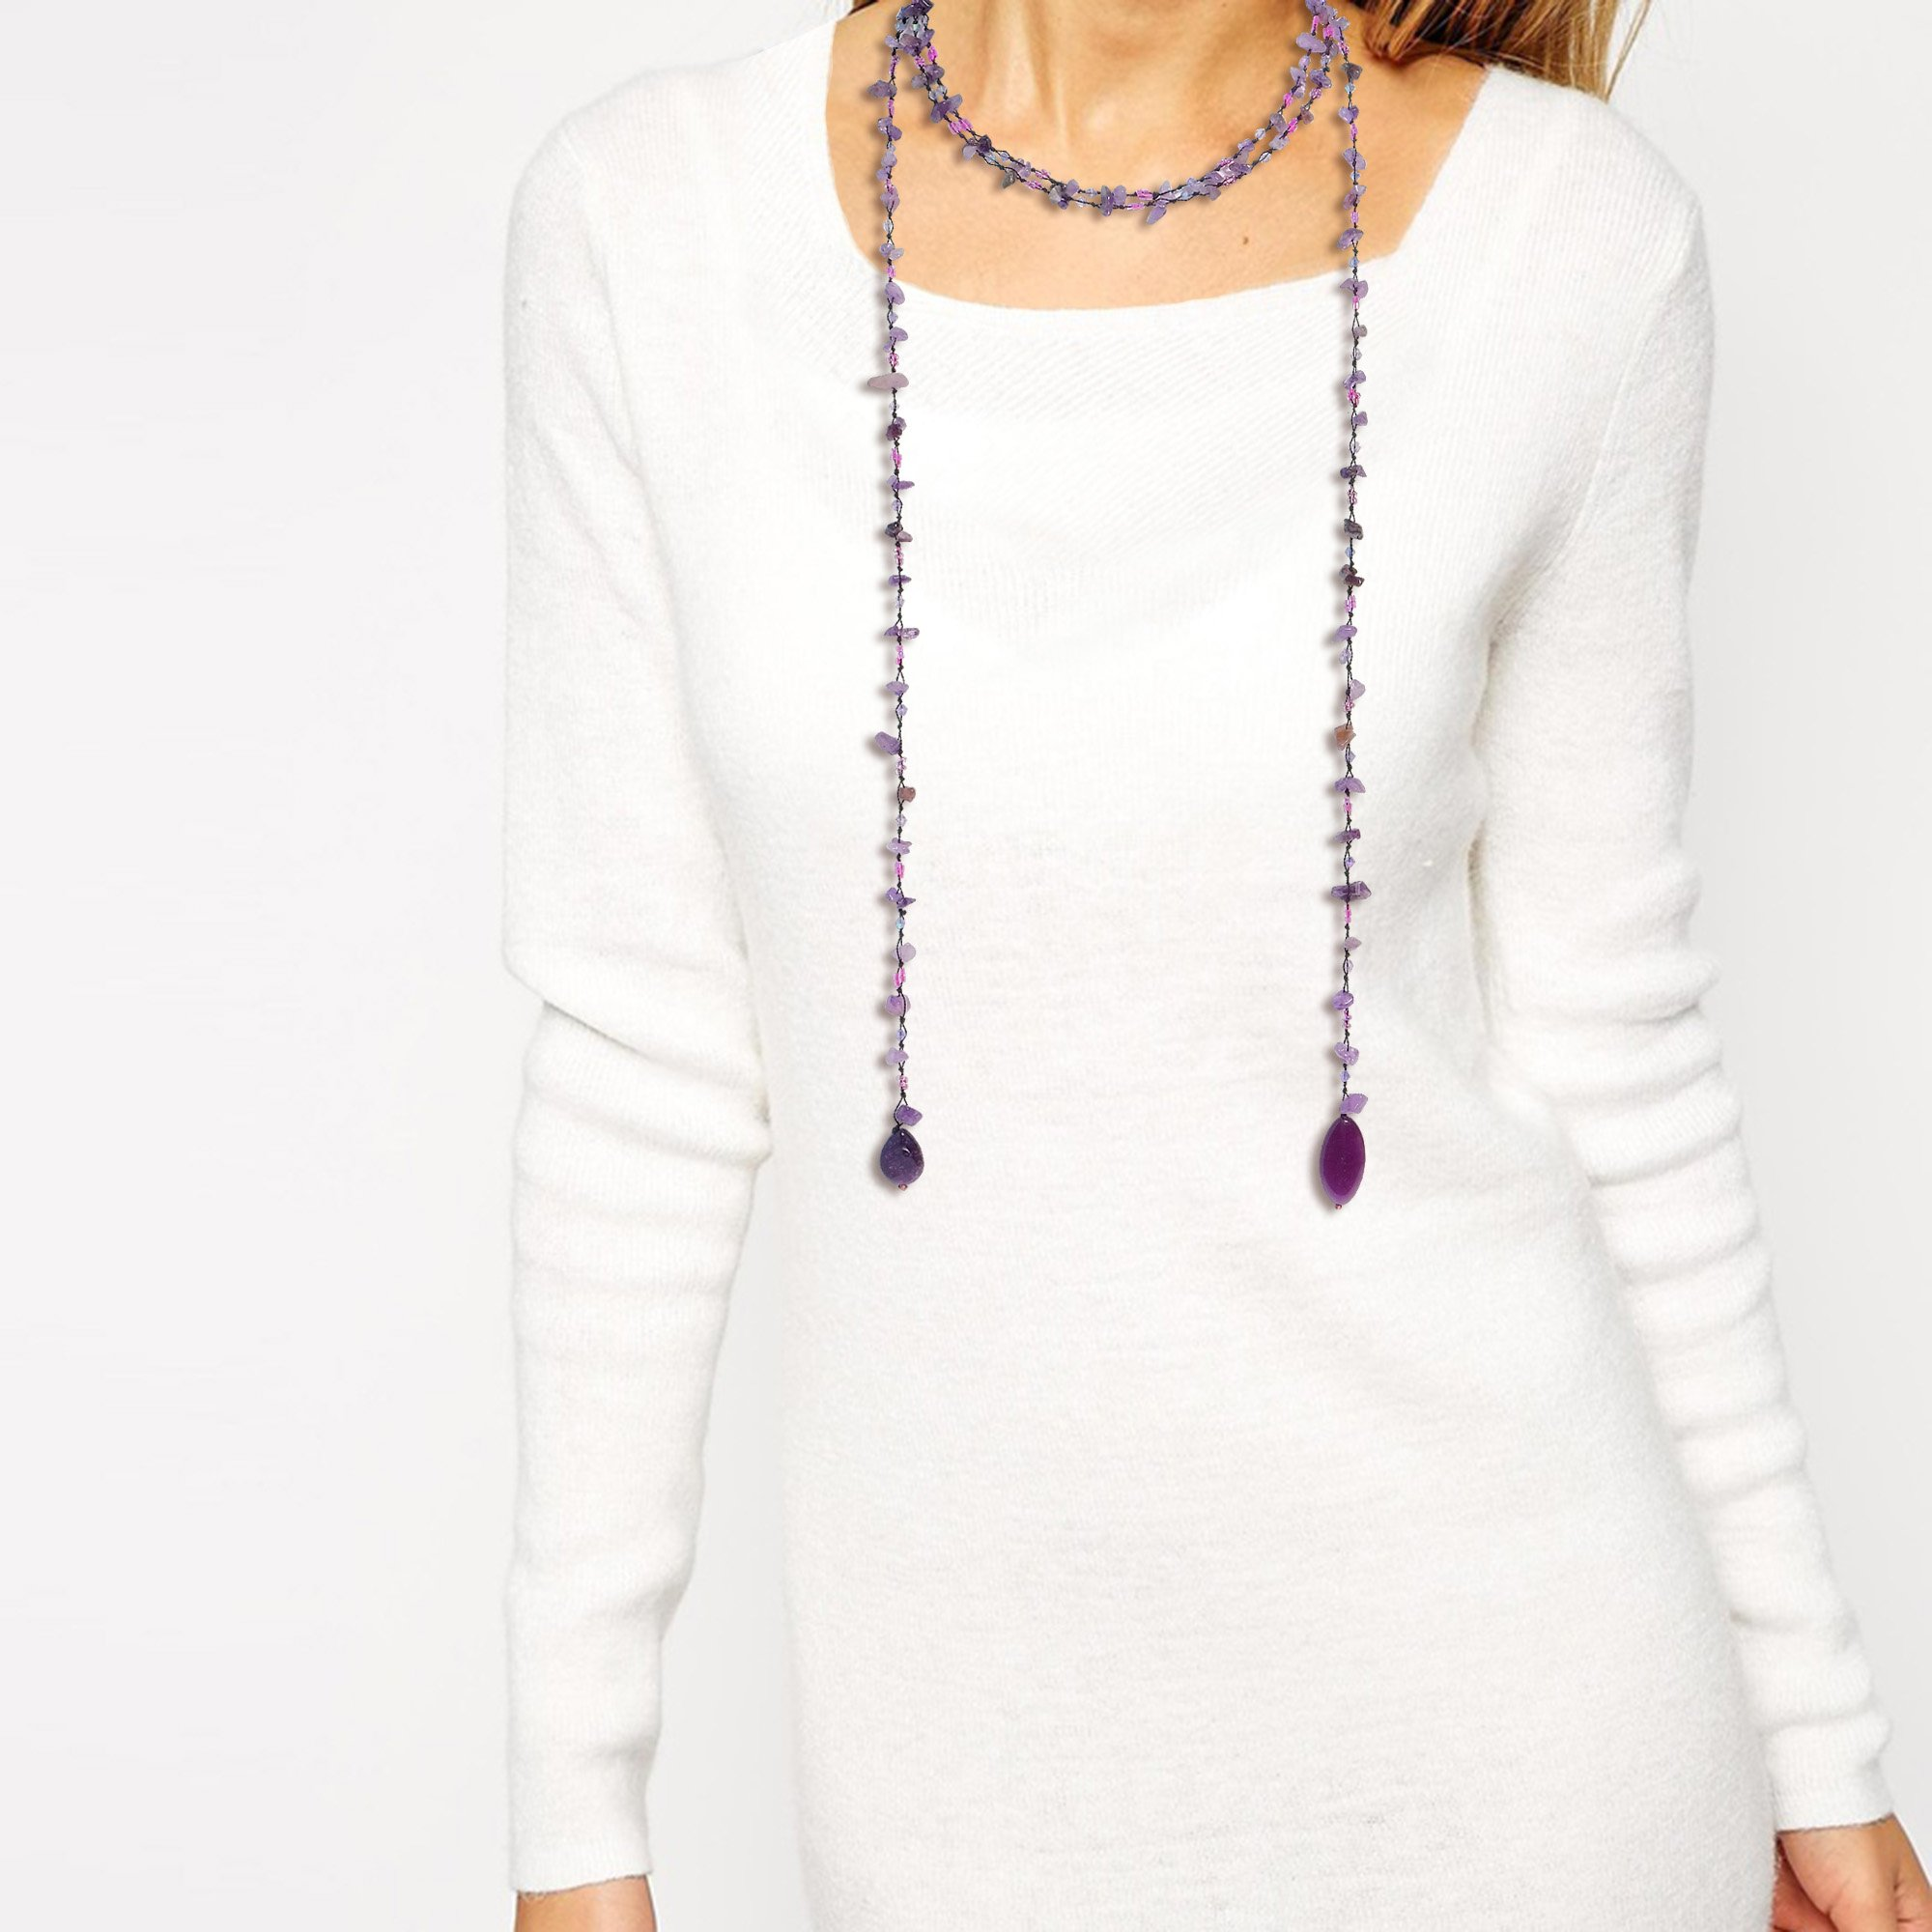 Sparkling Aura Simulated Amethyst & Reconstructed Agate Lariat Necklace by AeraVida (Image #2)